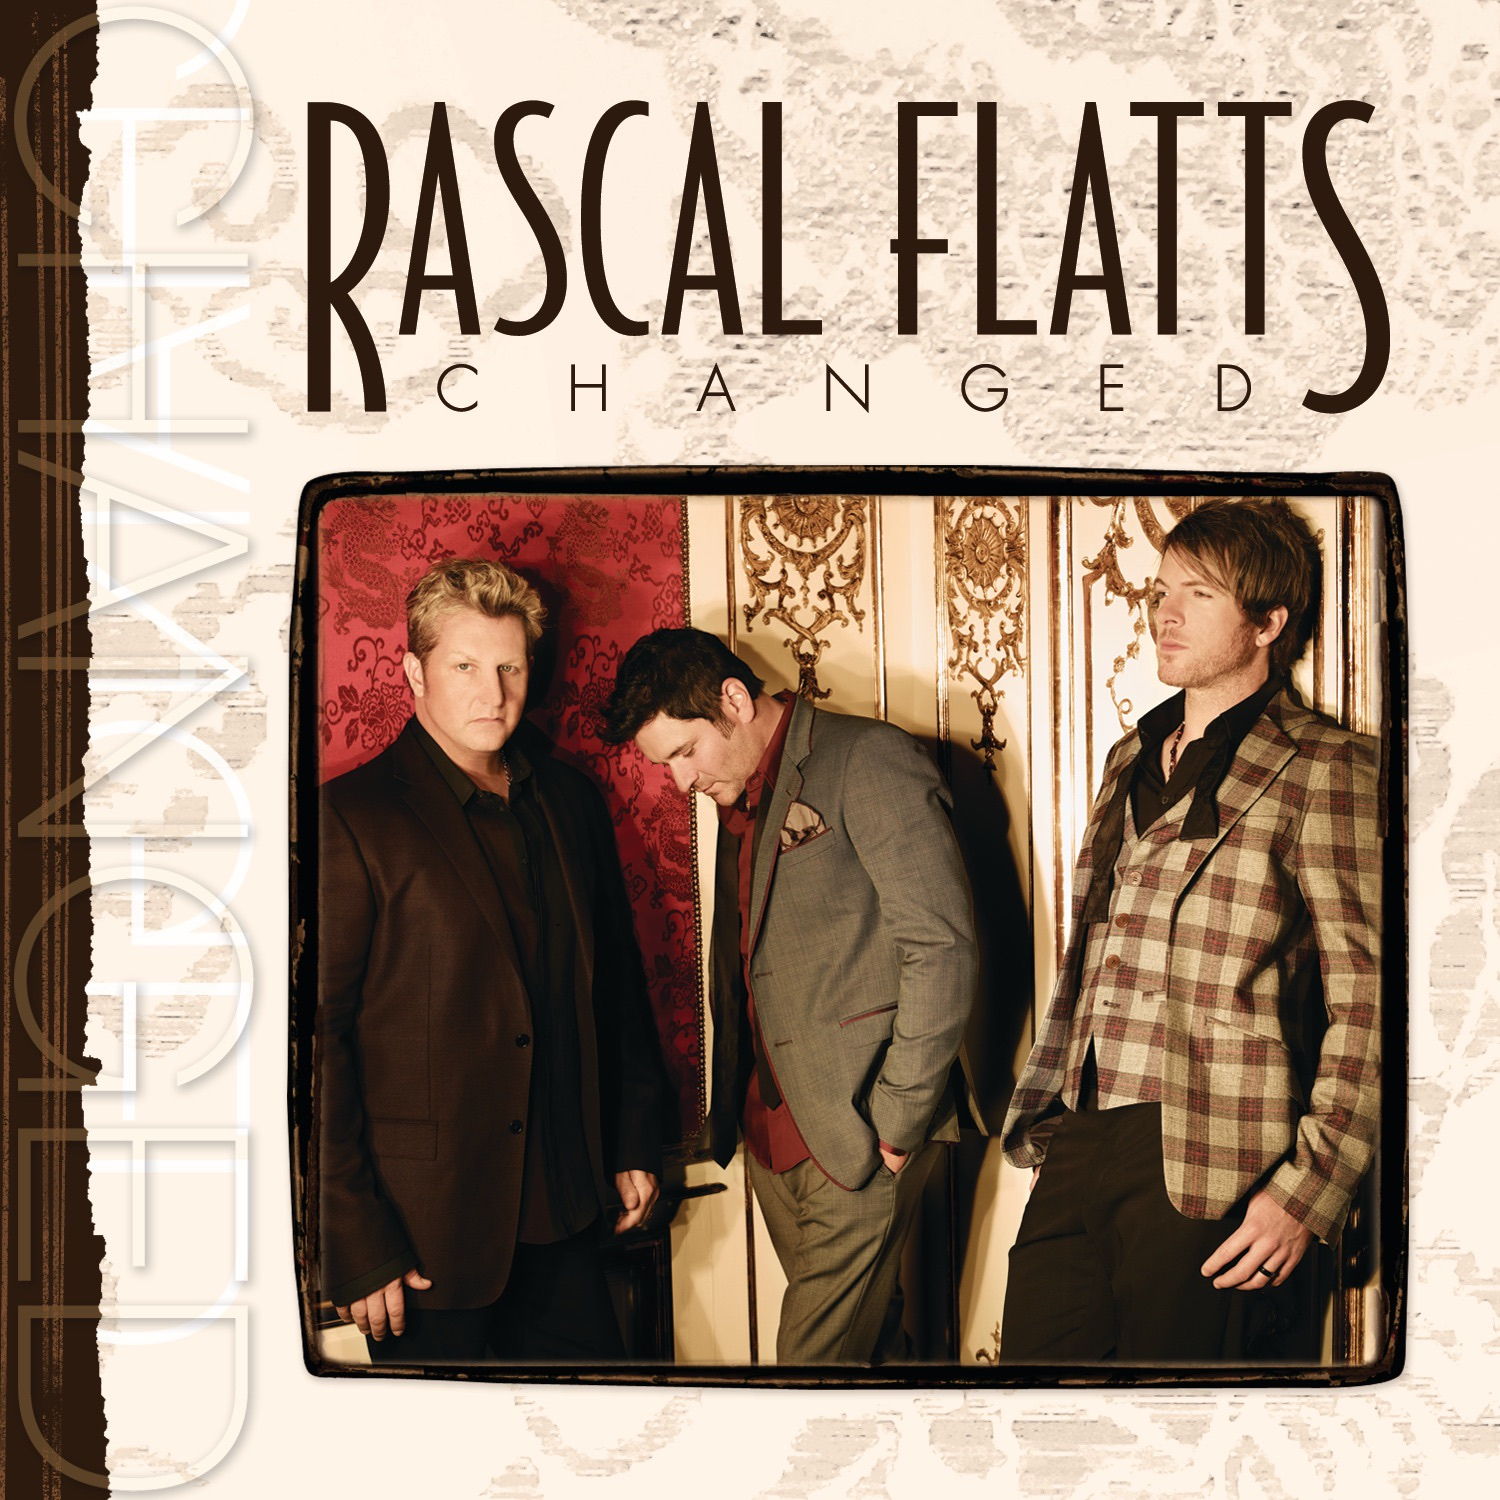 Rascal Flatts album Changed (Deluxe Edition)